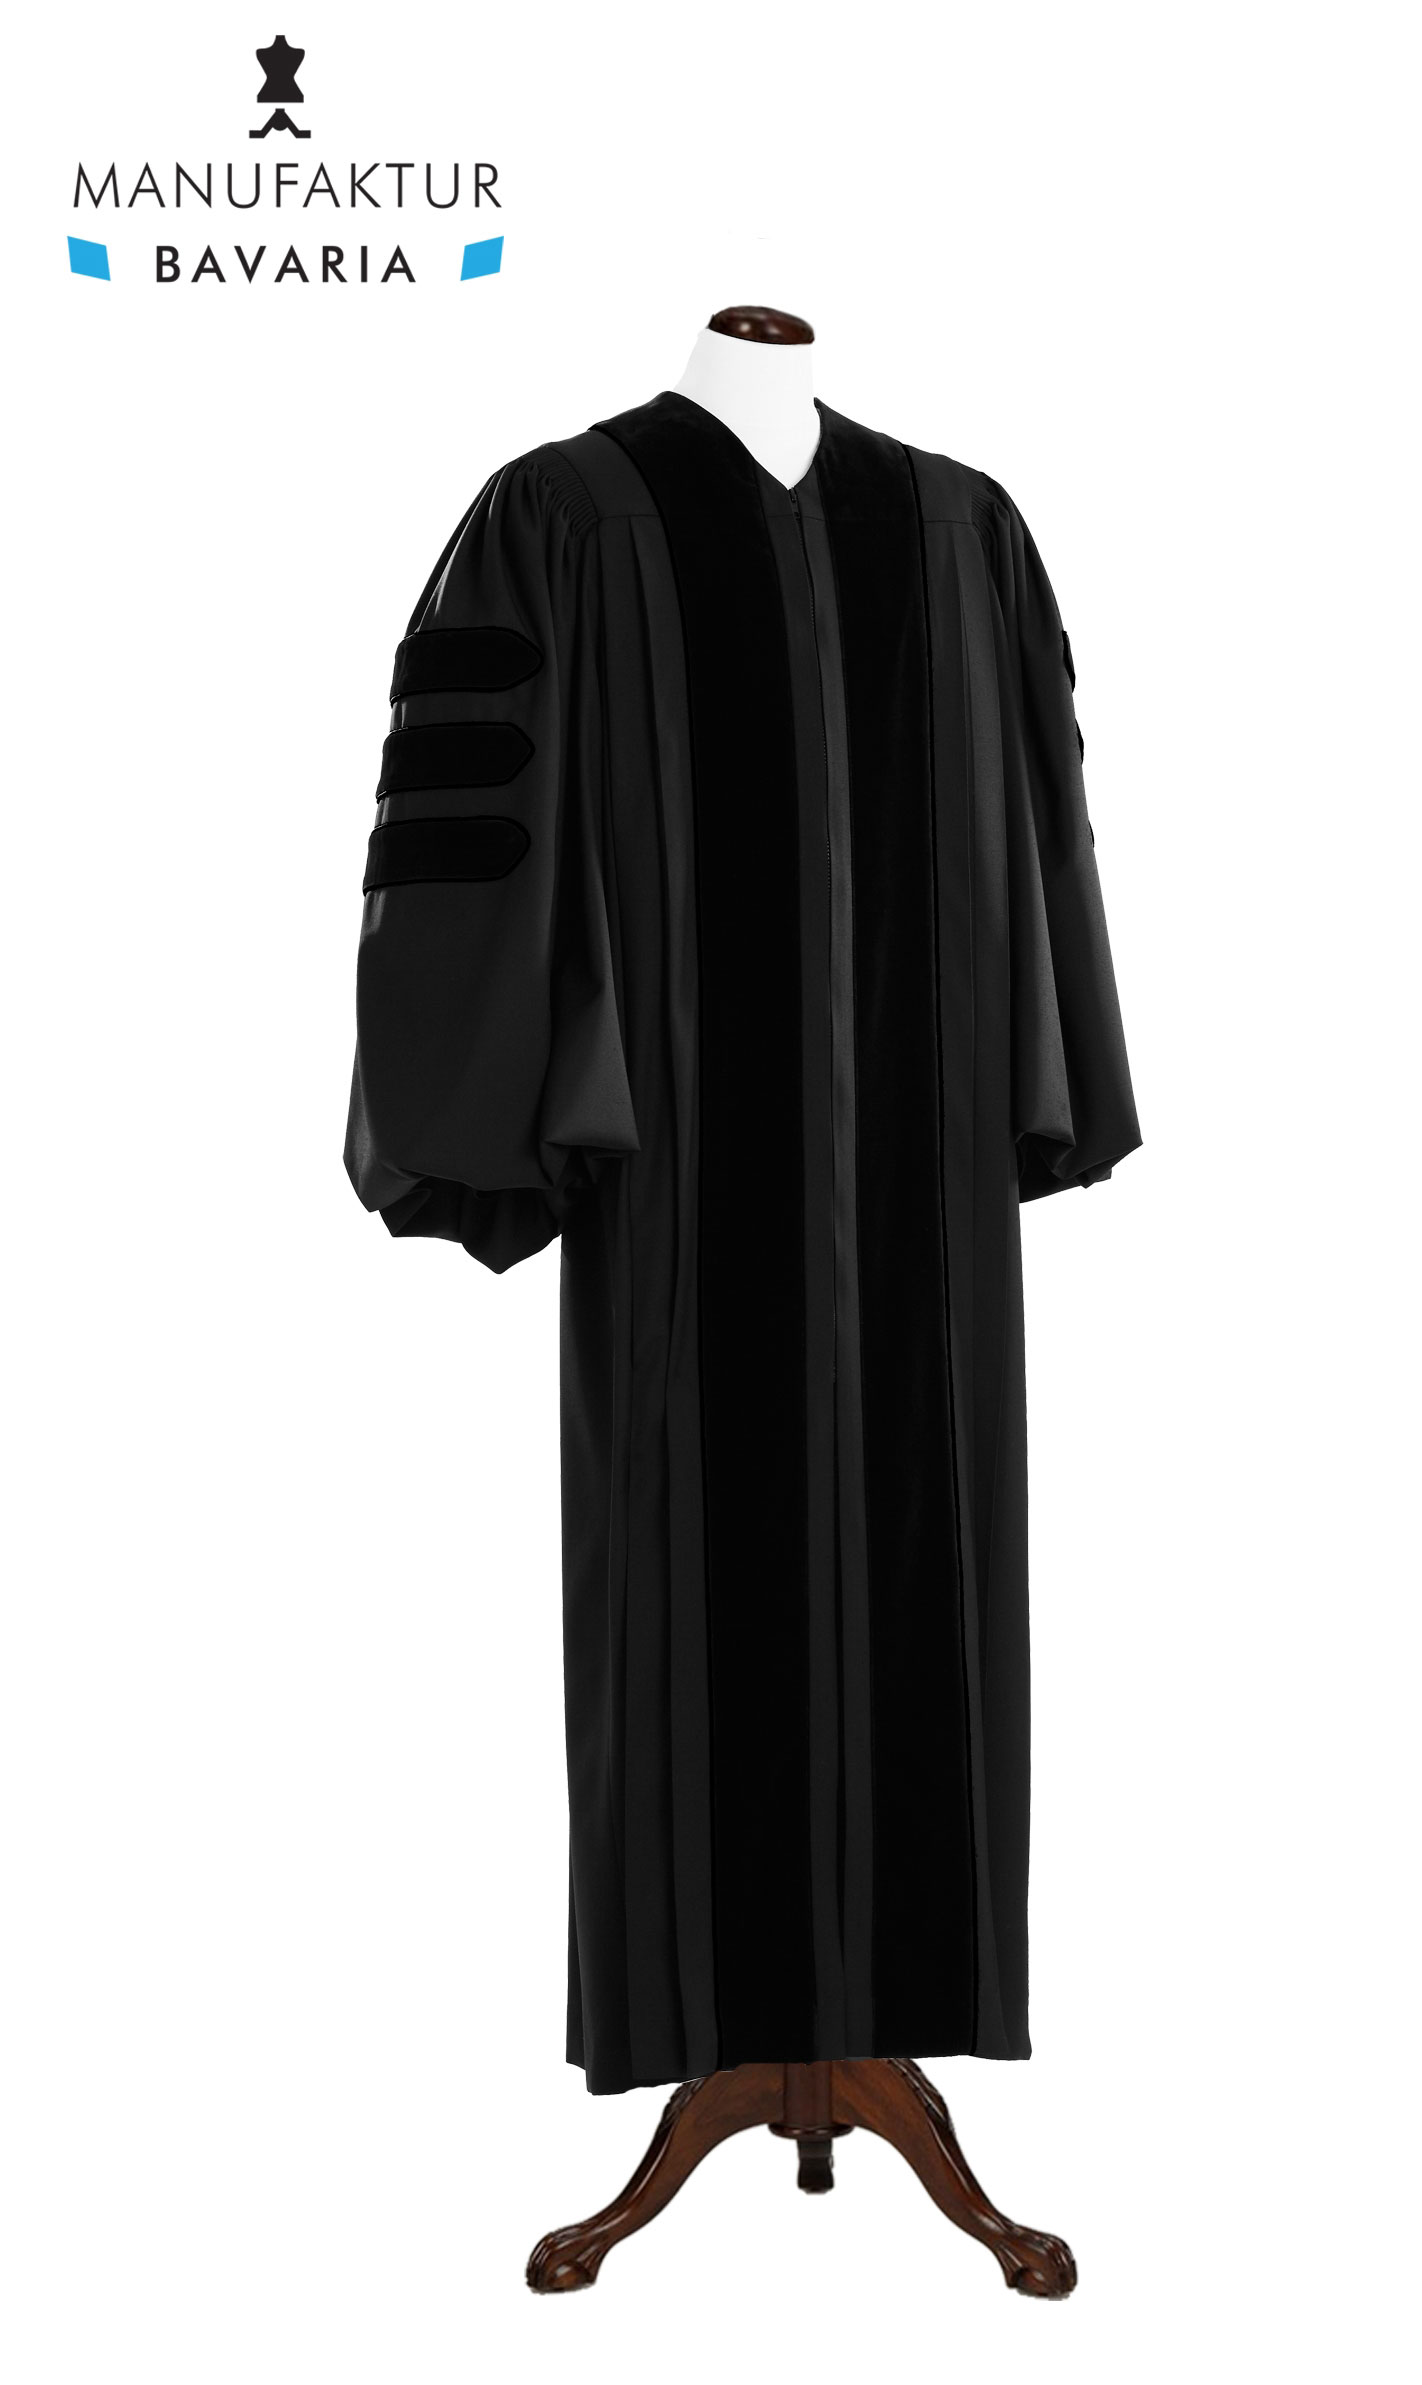 Deluxe Doctoral Academic Talar, royal regalia